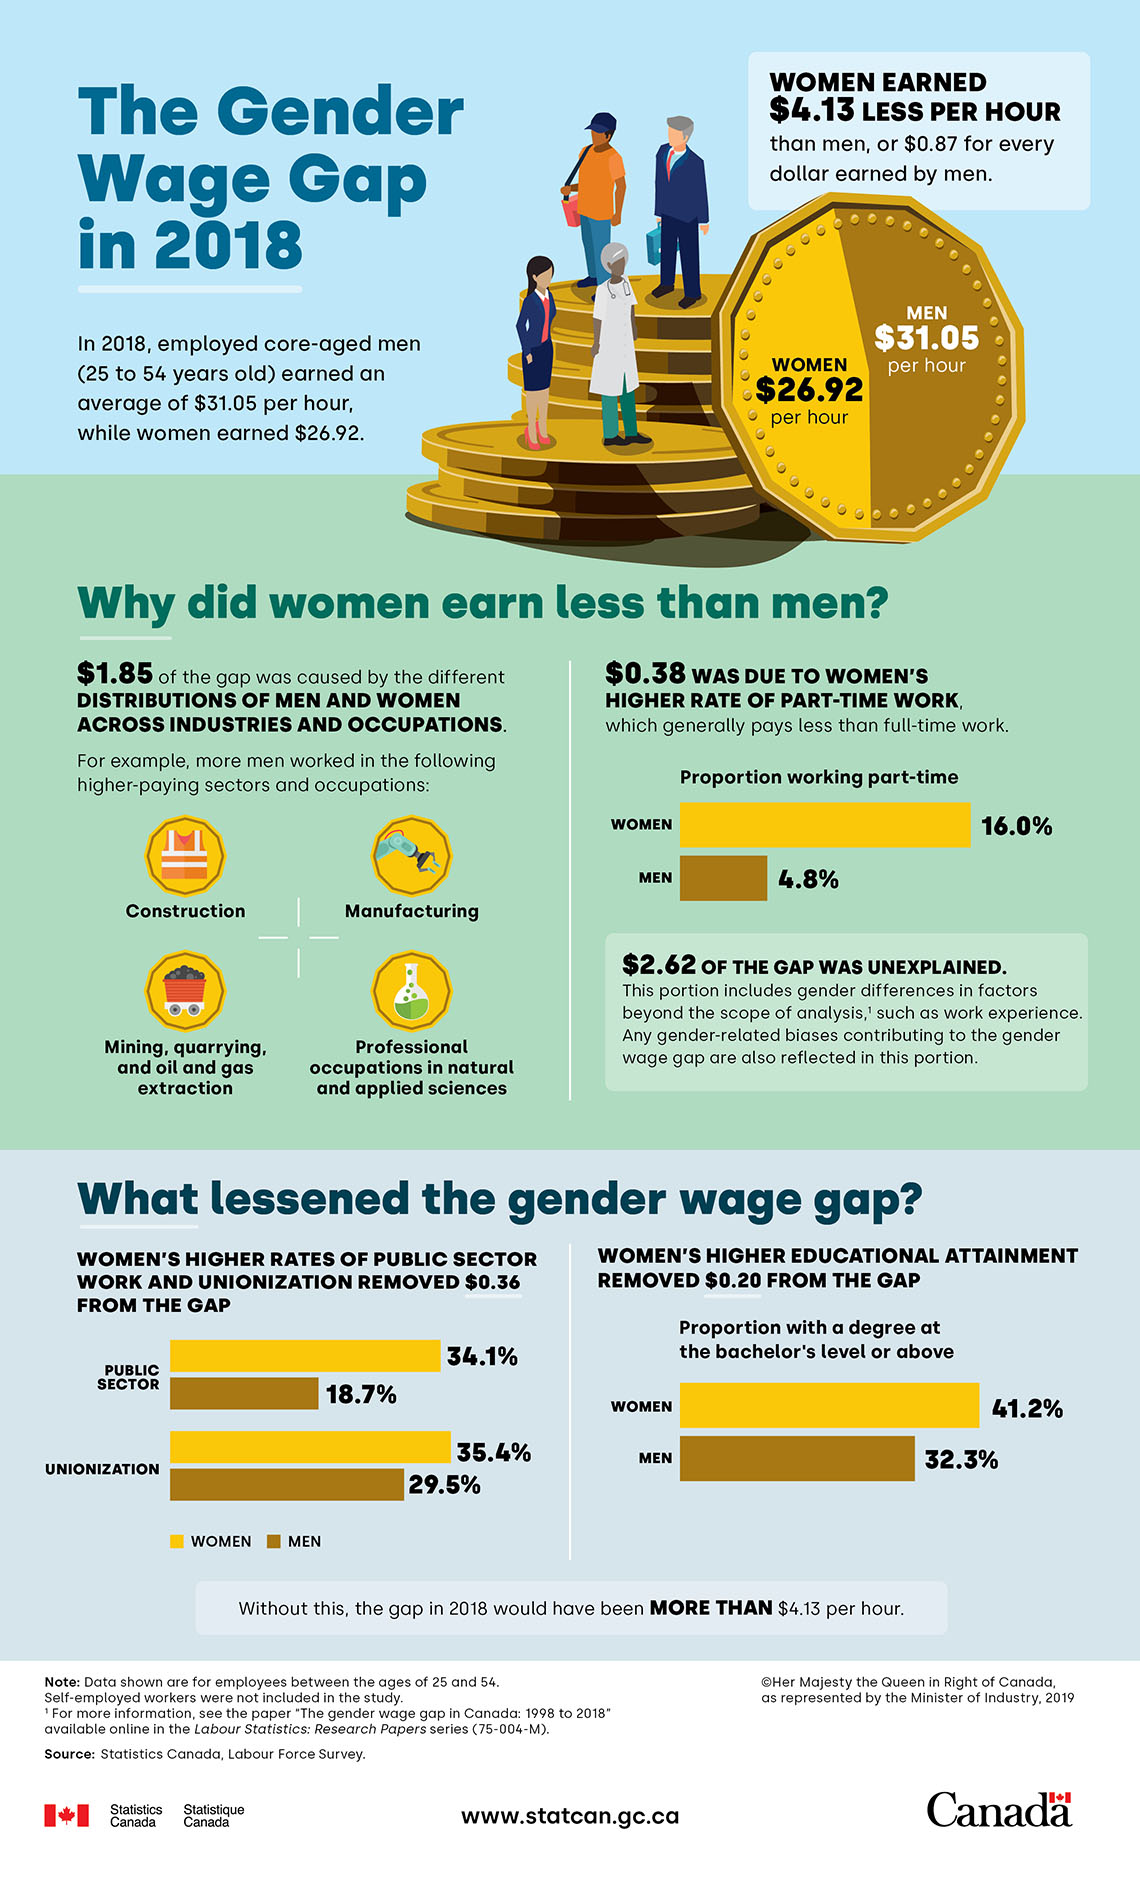 tankar på klassisk kvalitetsdesign The Gender Wage Gap in 2018